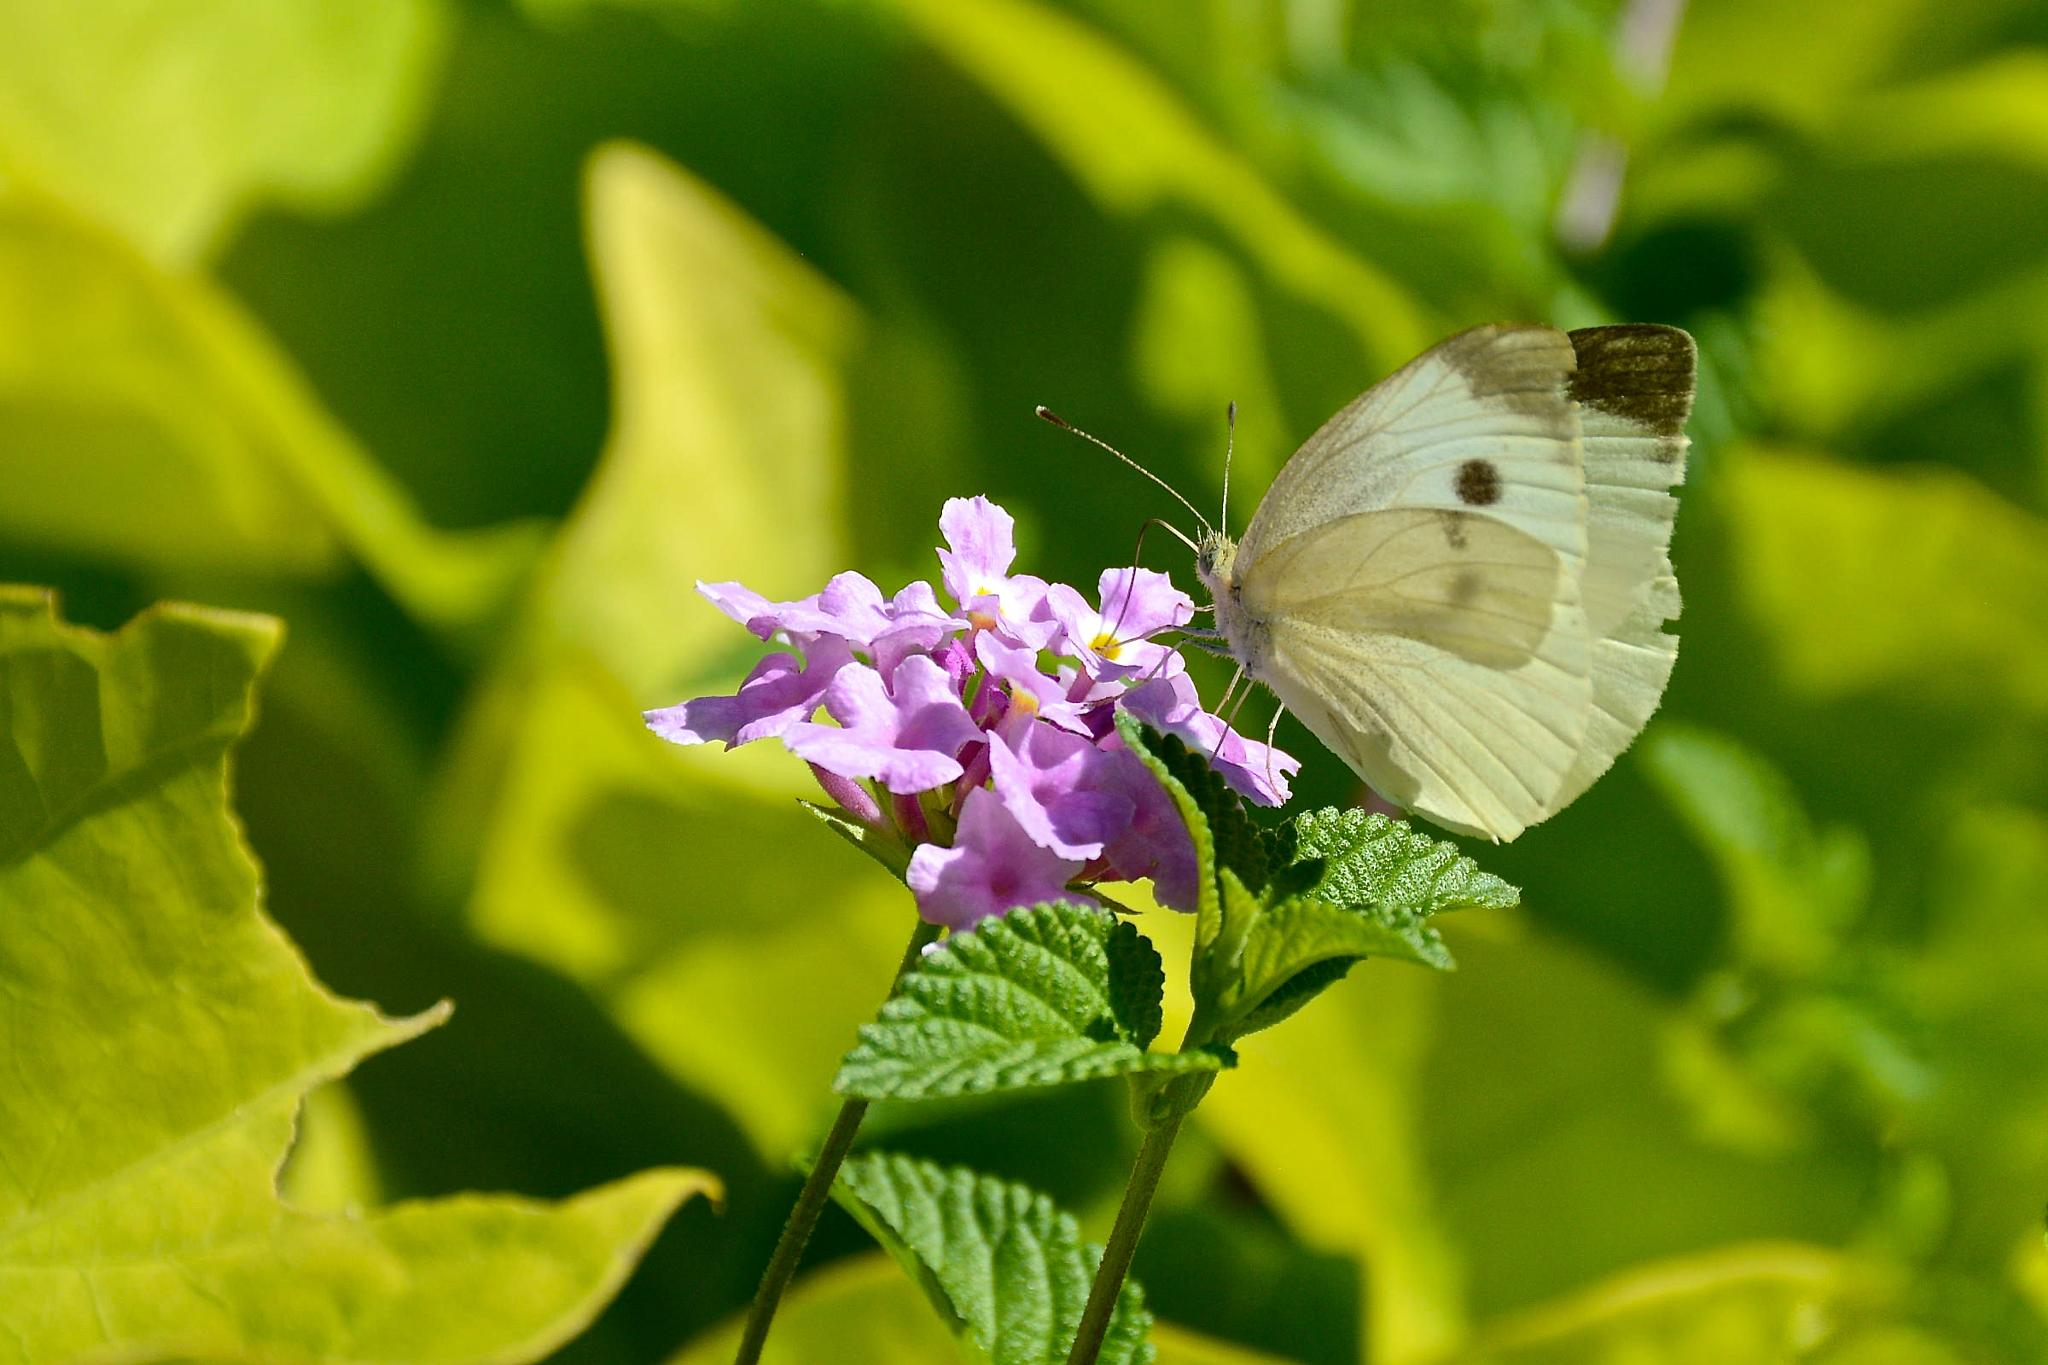 Cabbage White Butterfly by Kathy Lebron Photography